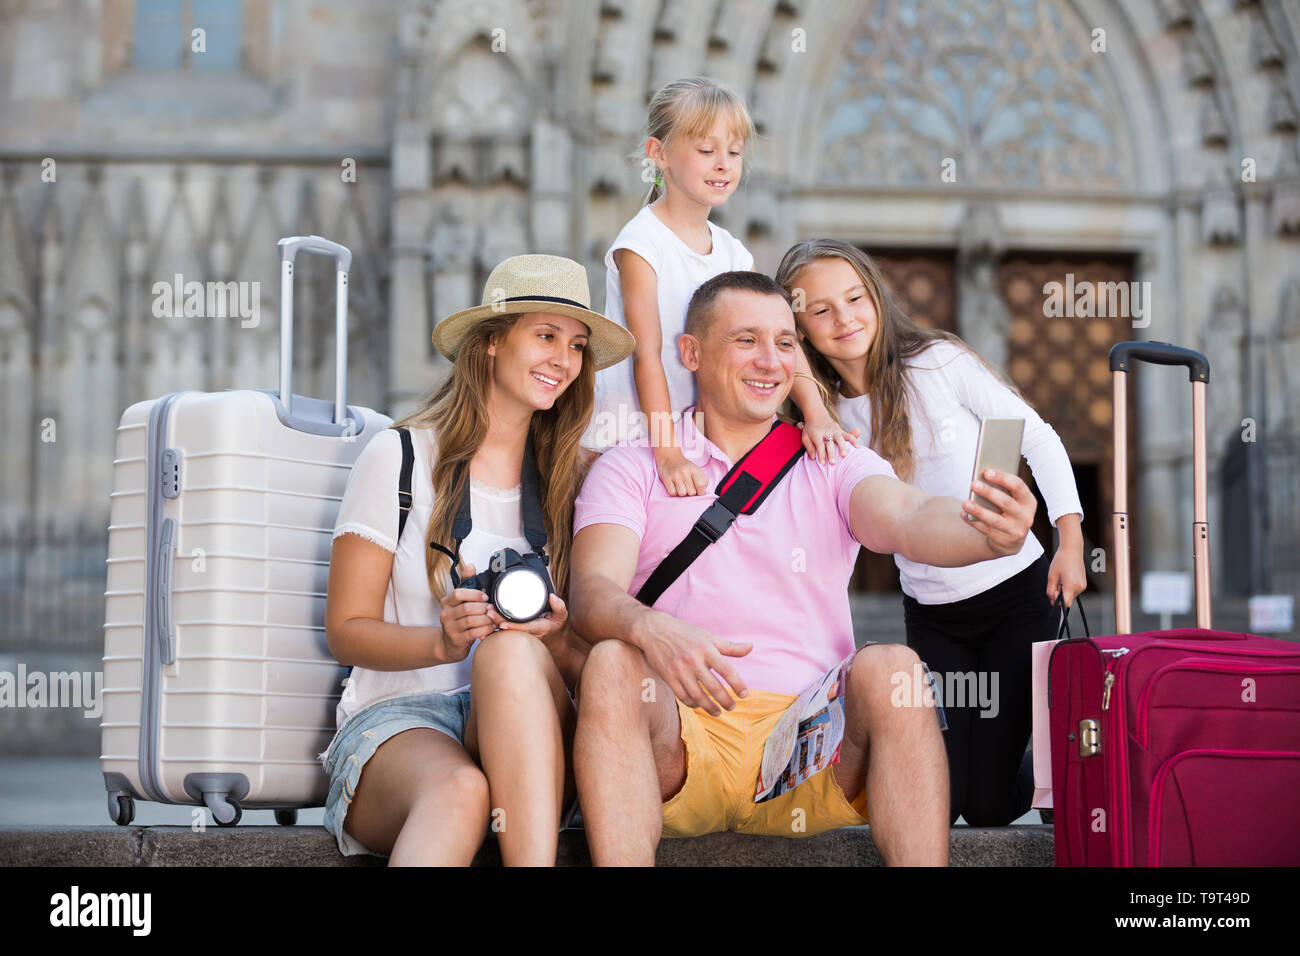 Cheerful parents with two kids taking selfie near city sights - Stock Image